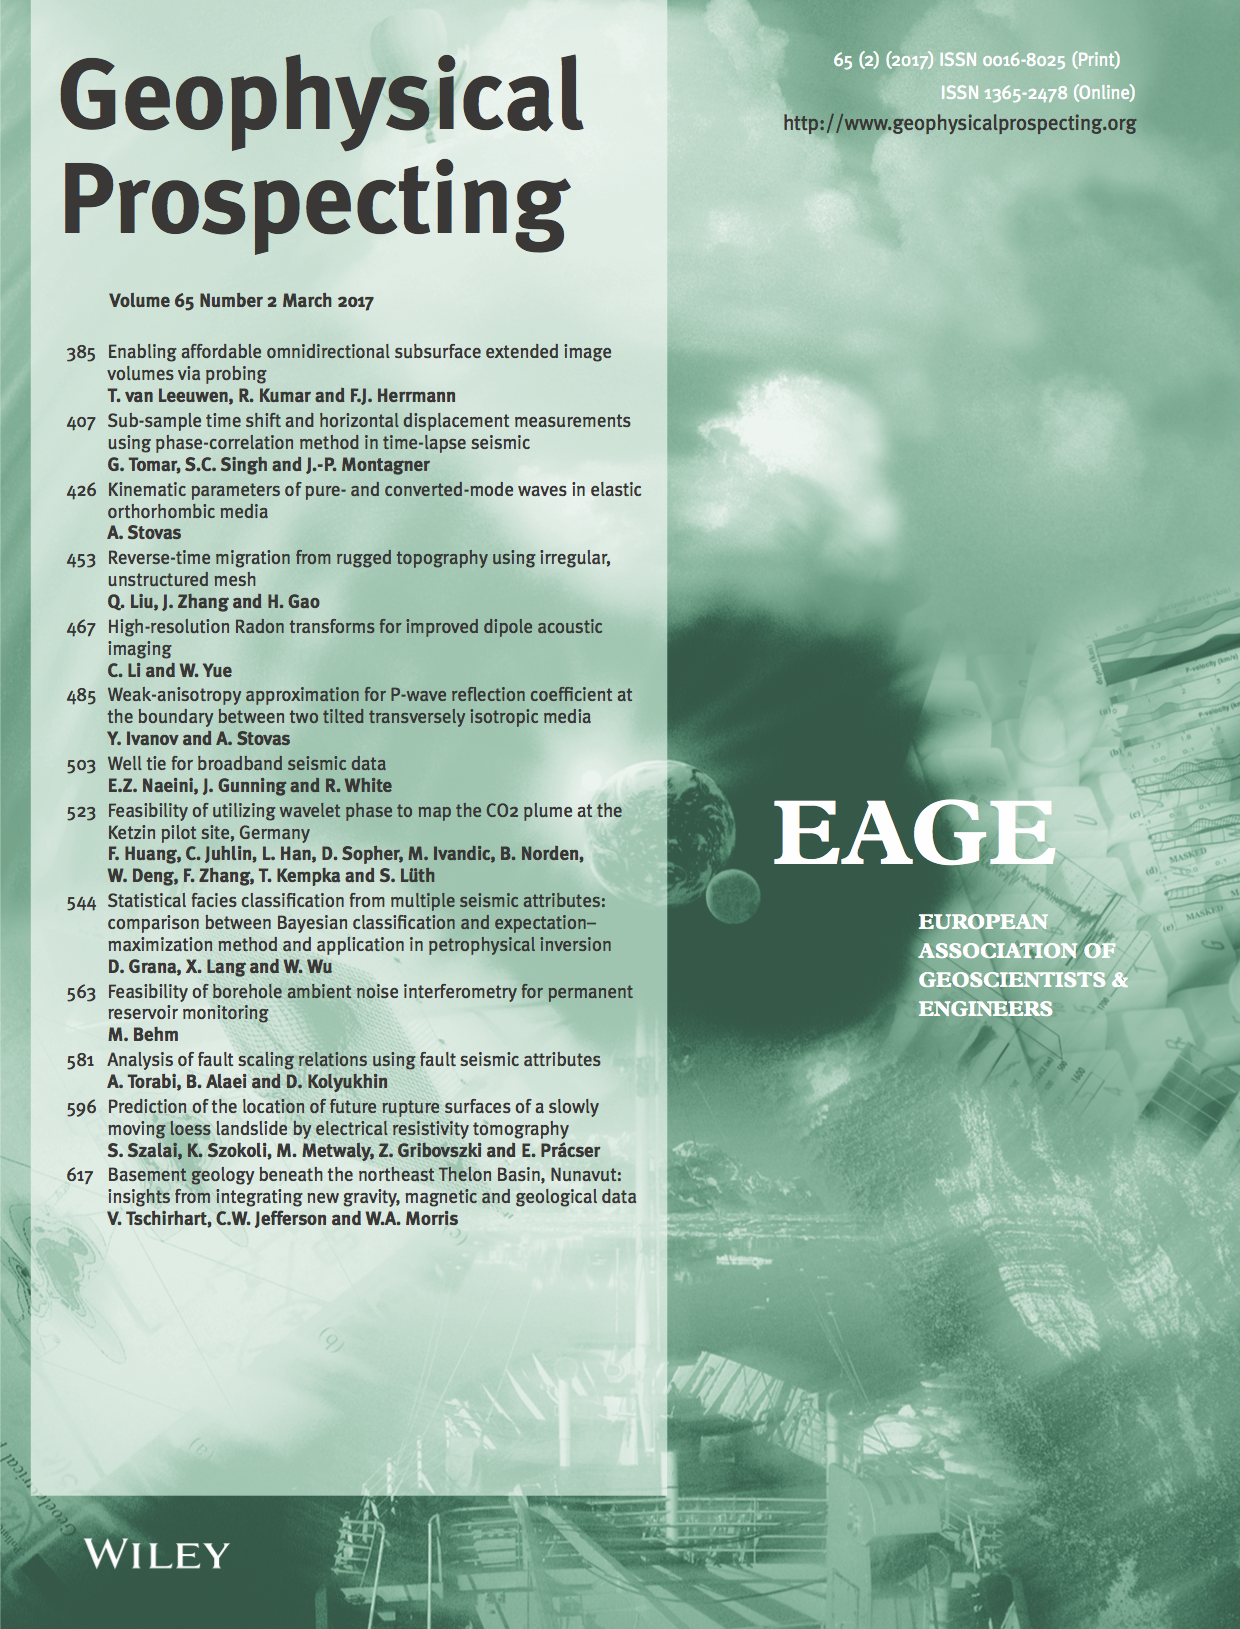 Geophysical Prospecting template (Wiley)